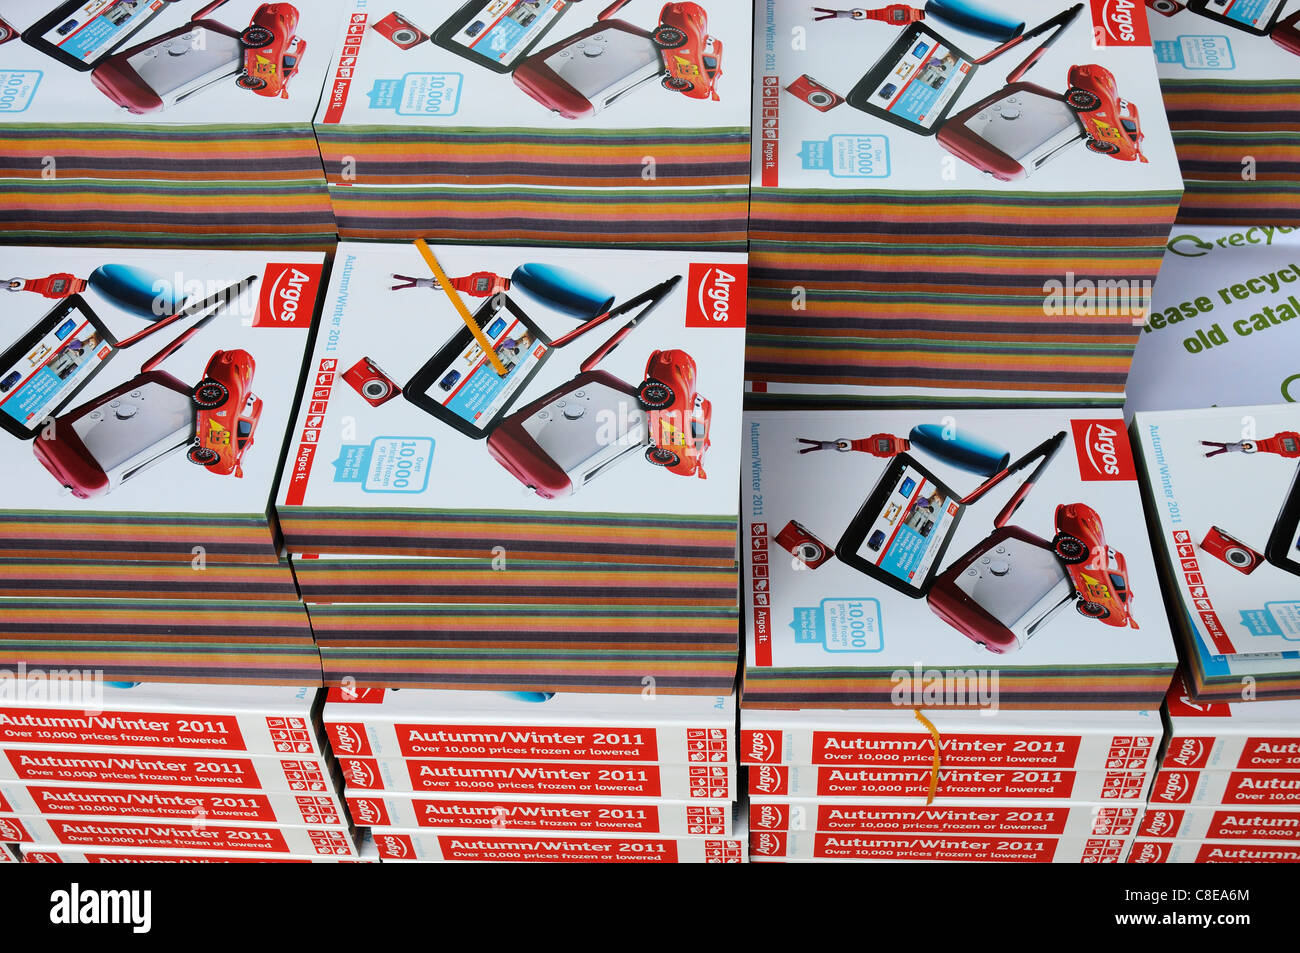 A pile of Argos catalogues Stock Photo: 39653340 - Alamy